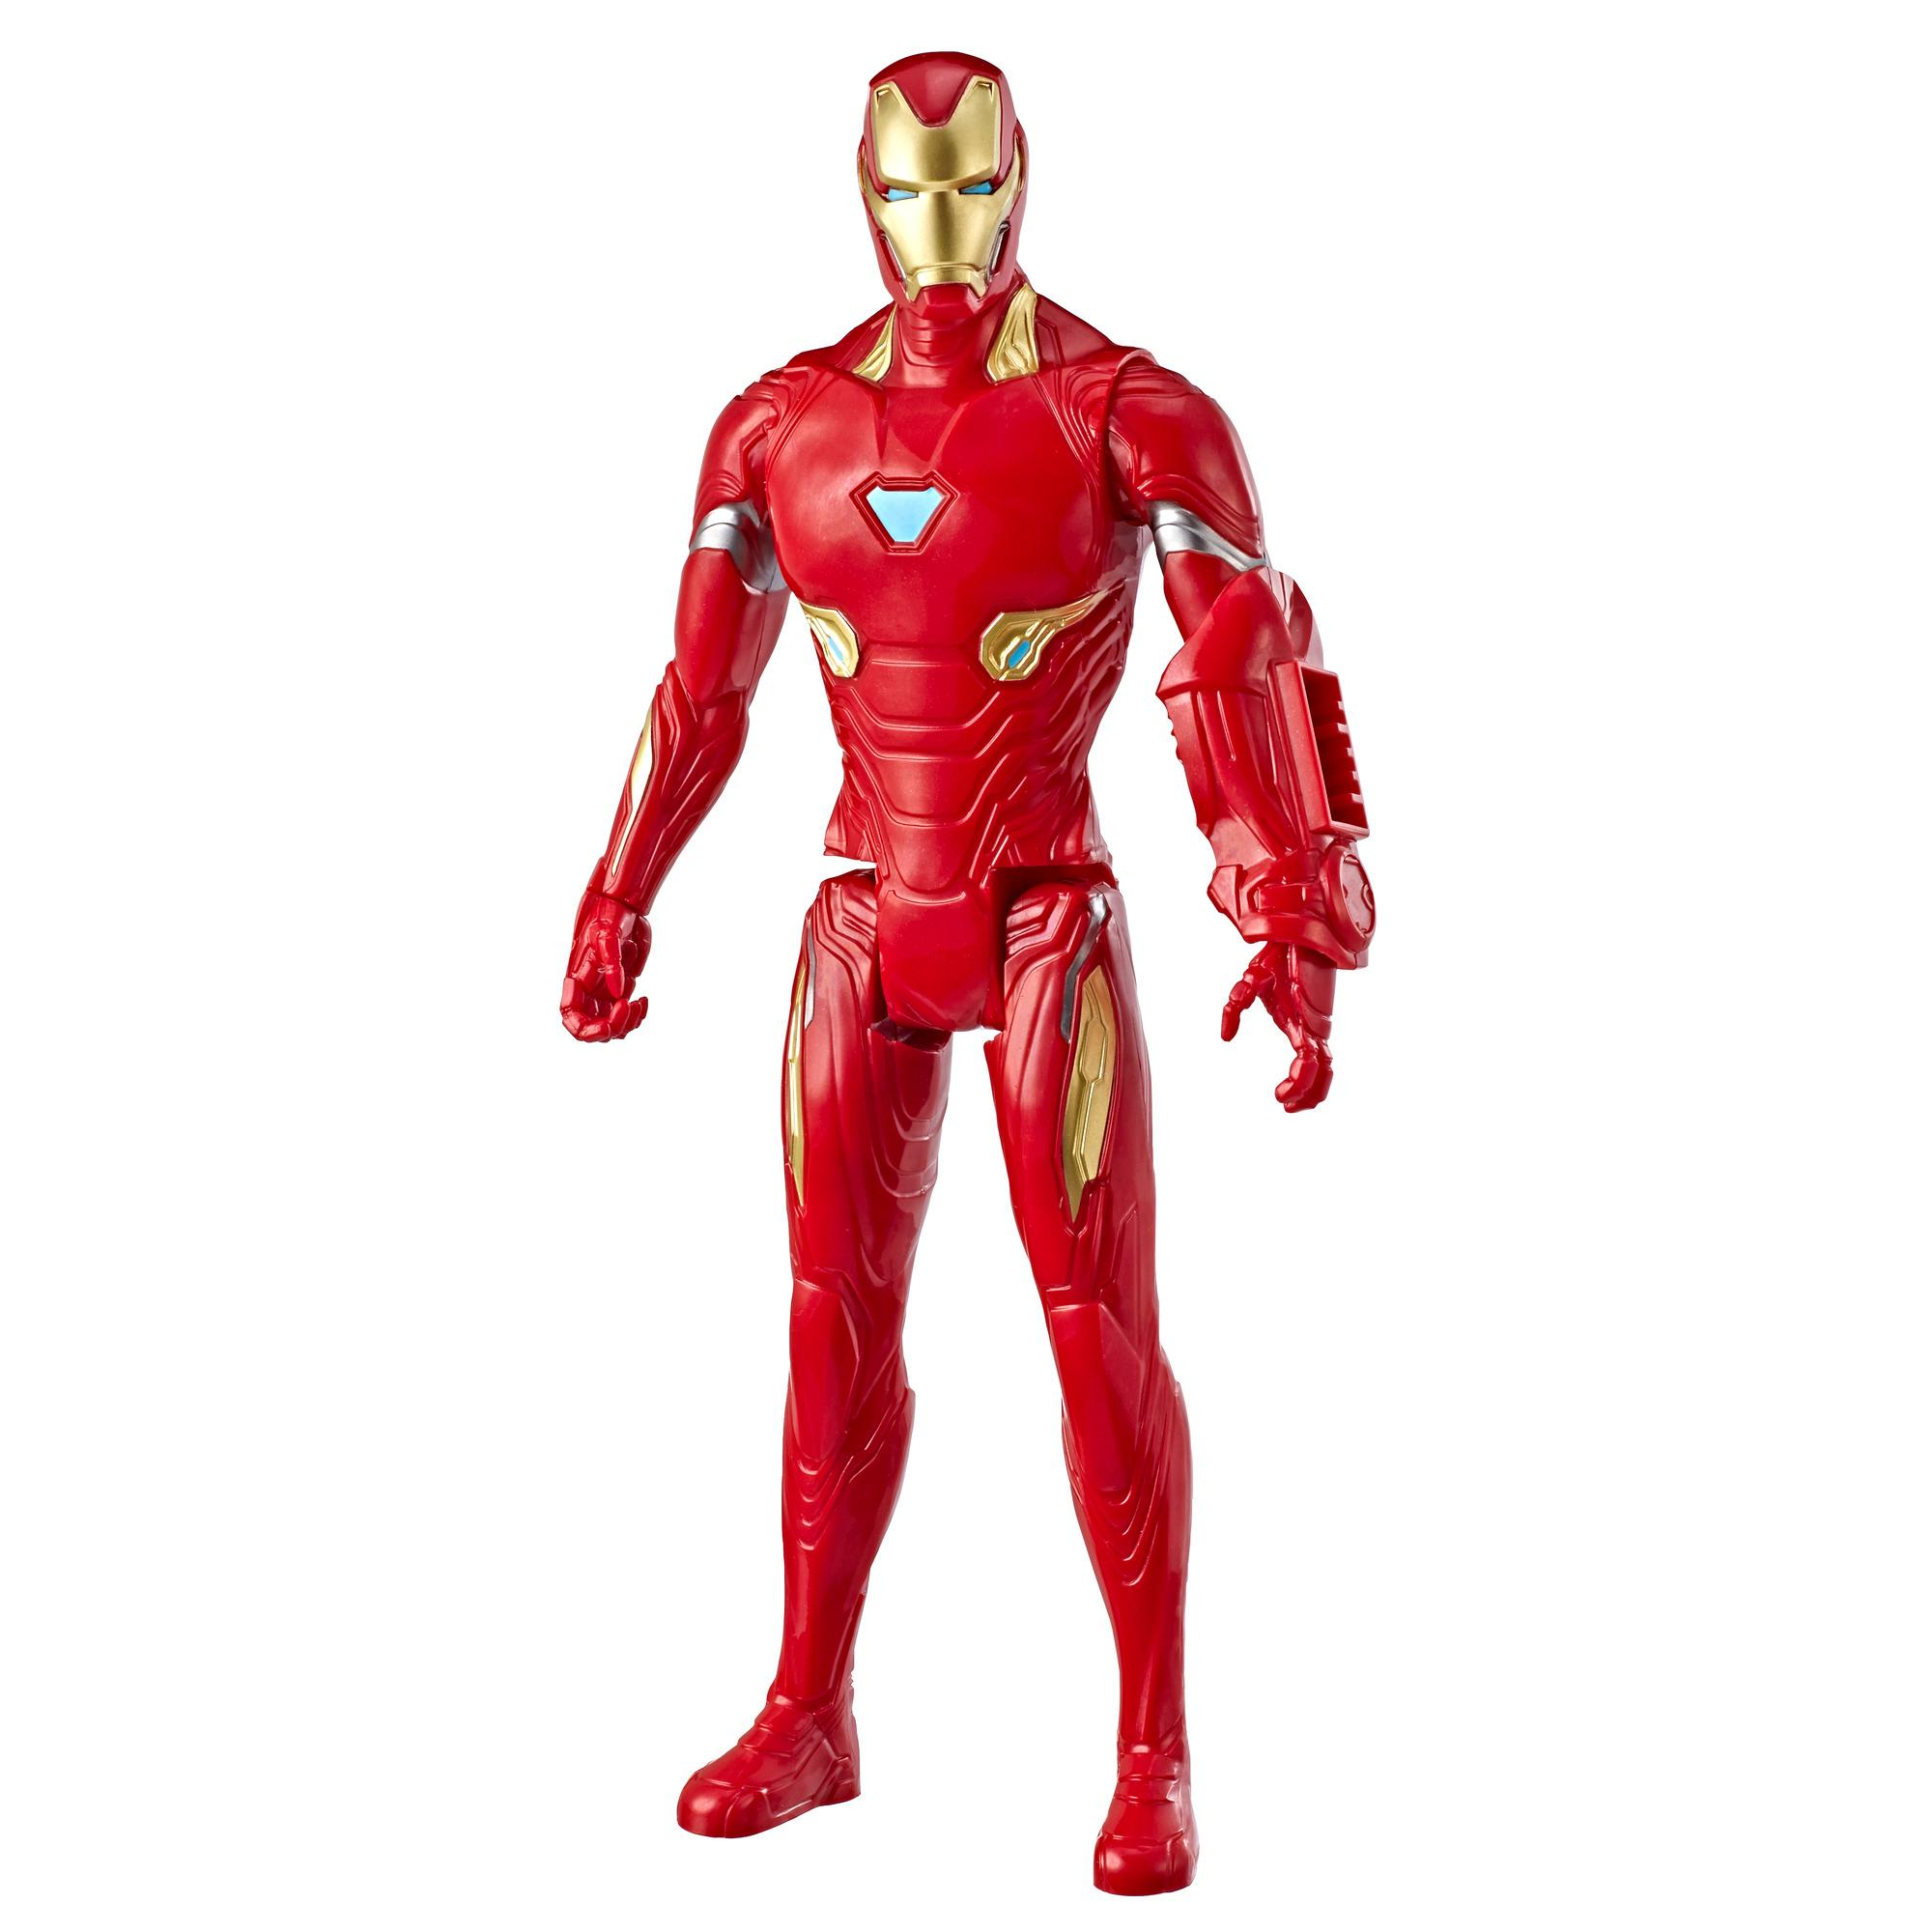 Avengers Endgame Titan Hero Iron-Man